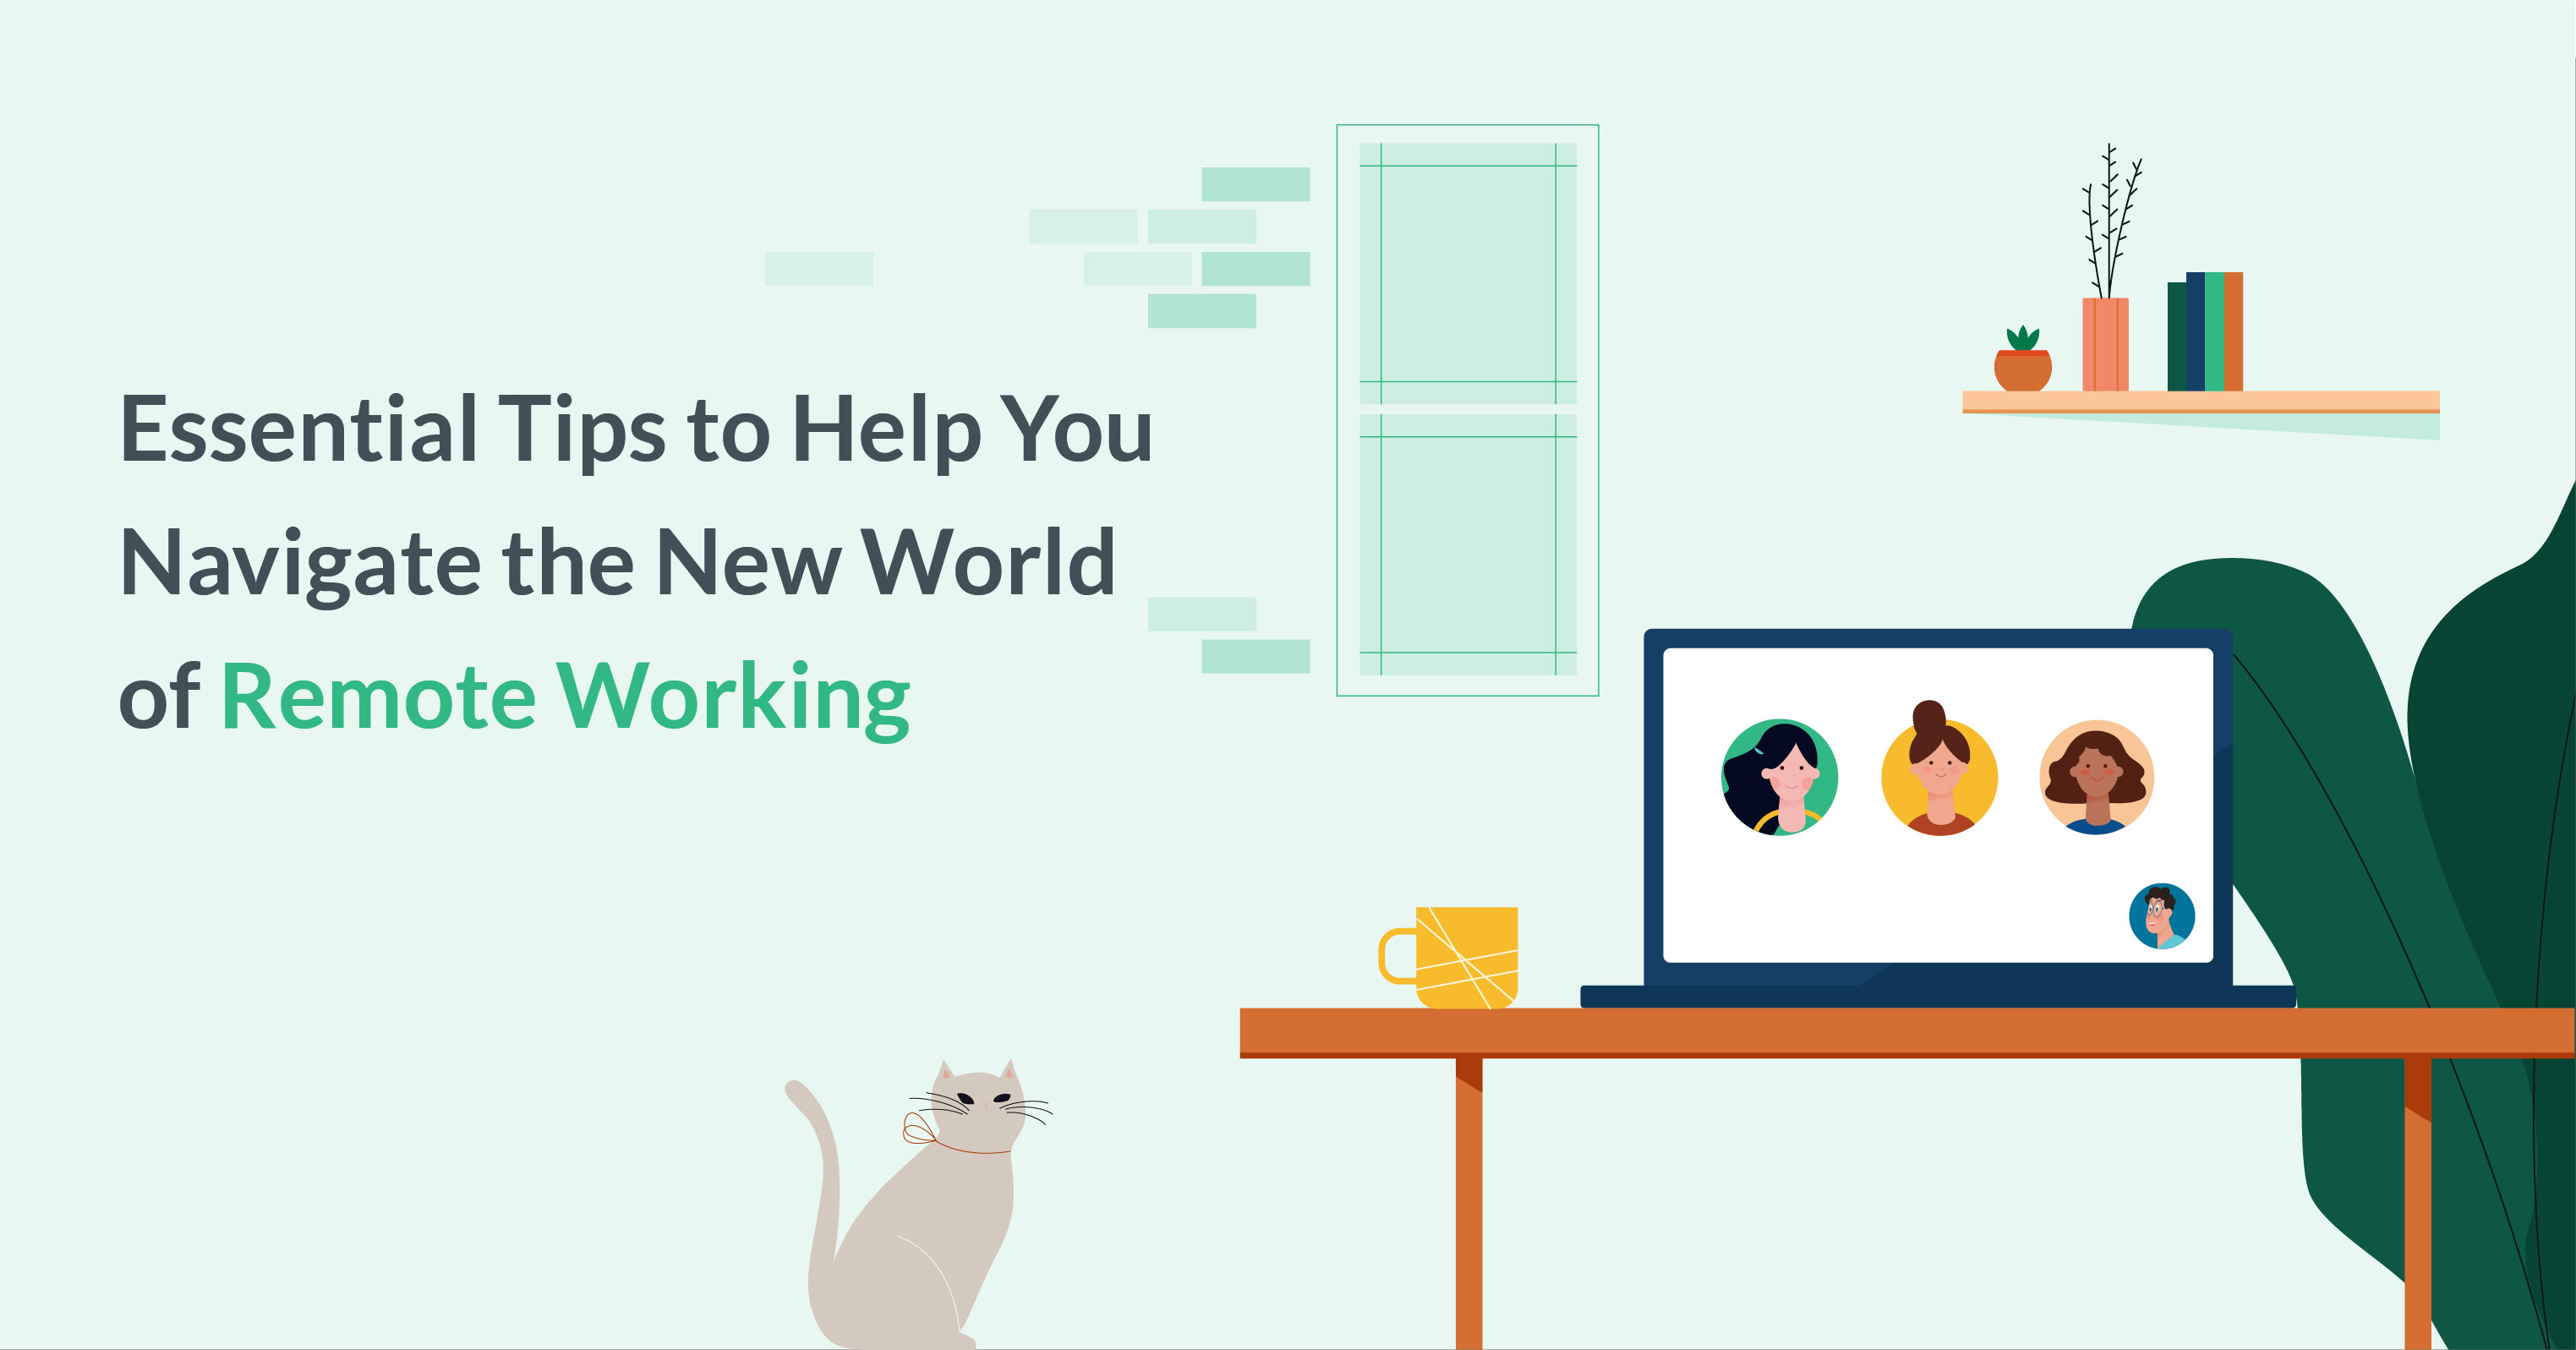 Essential tips to help you navigate the new world of remote working